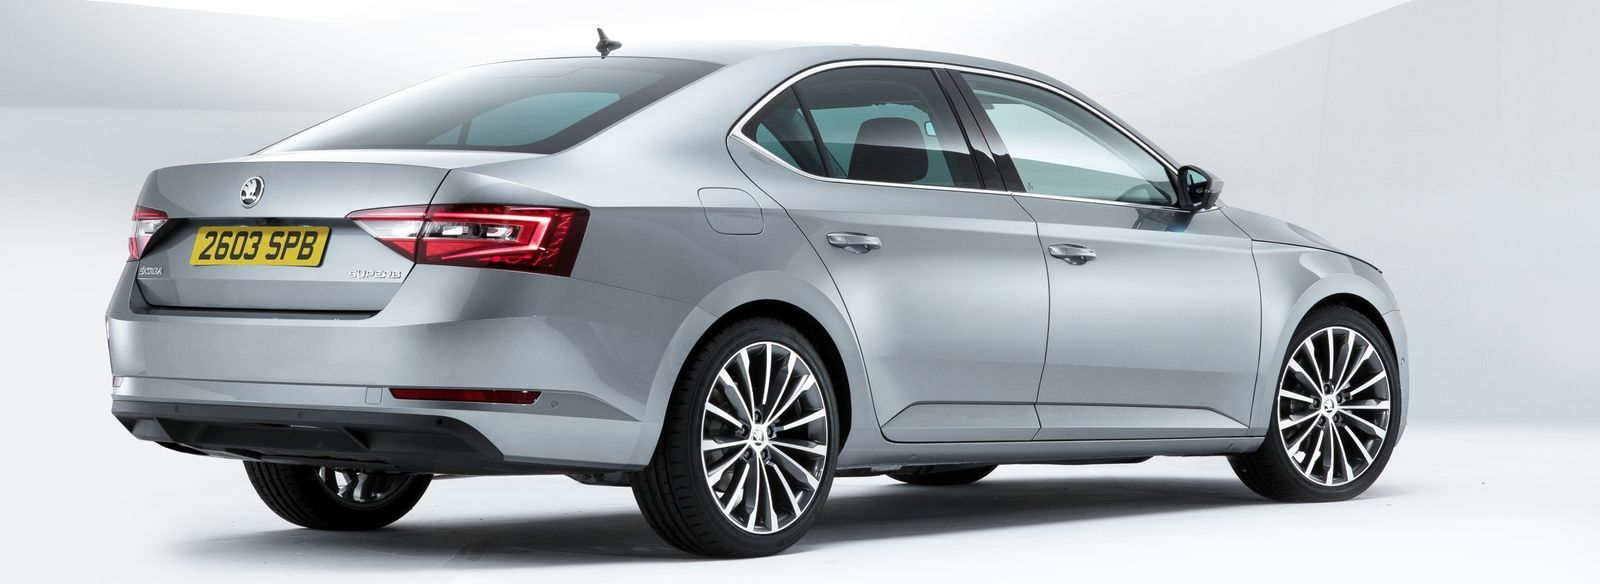 skoda superb and estate sizes and dimensions guide carwow. Black Bedroom Furniture Sets. Home Design Ideas